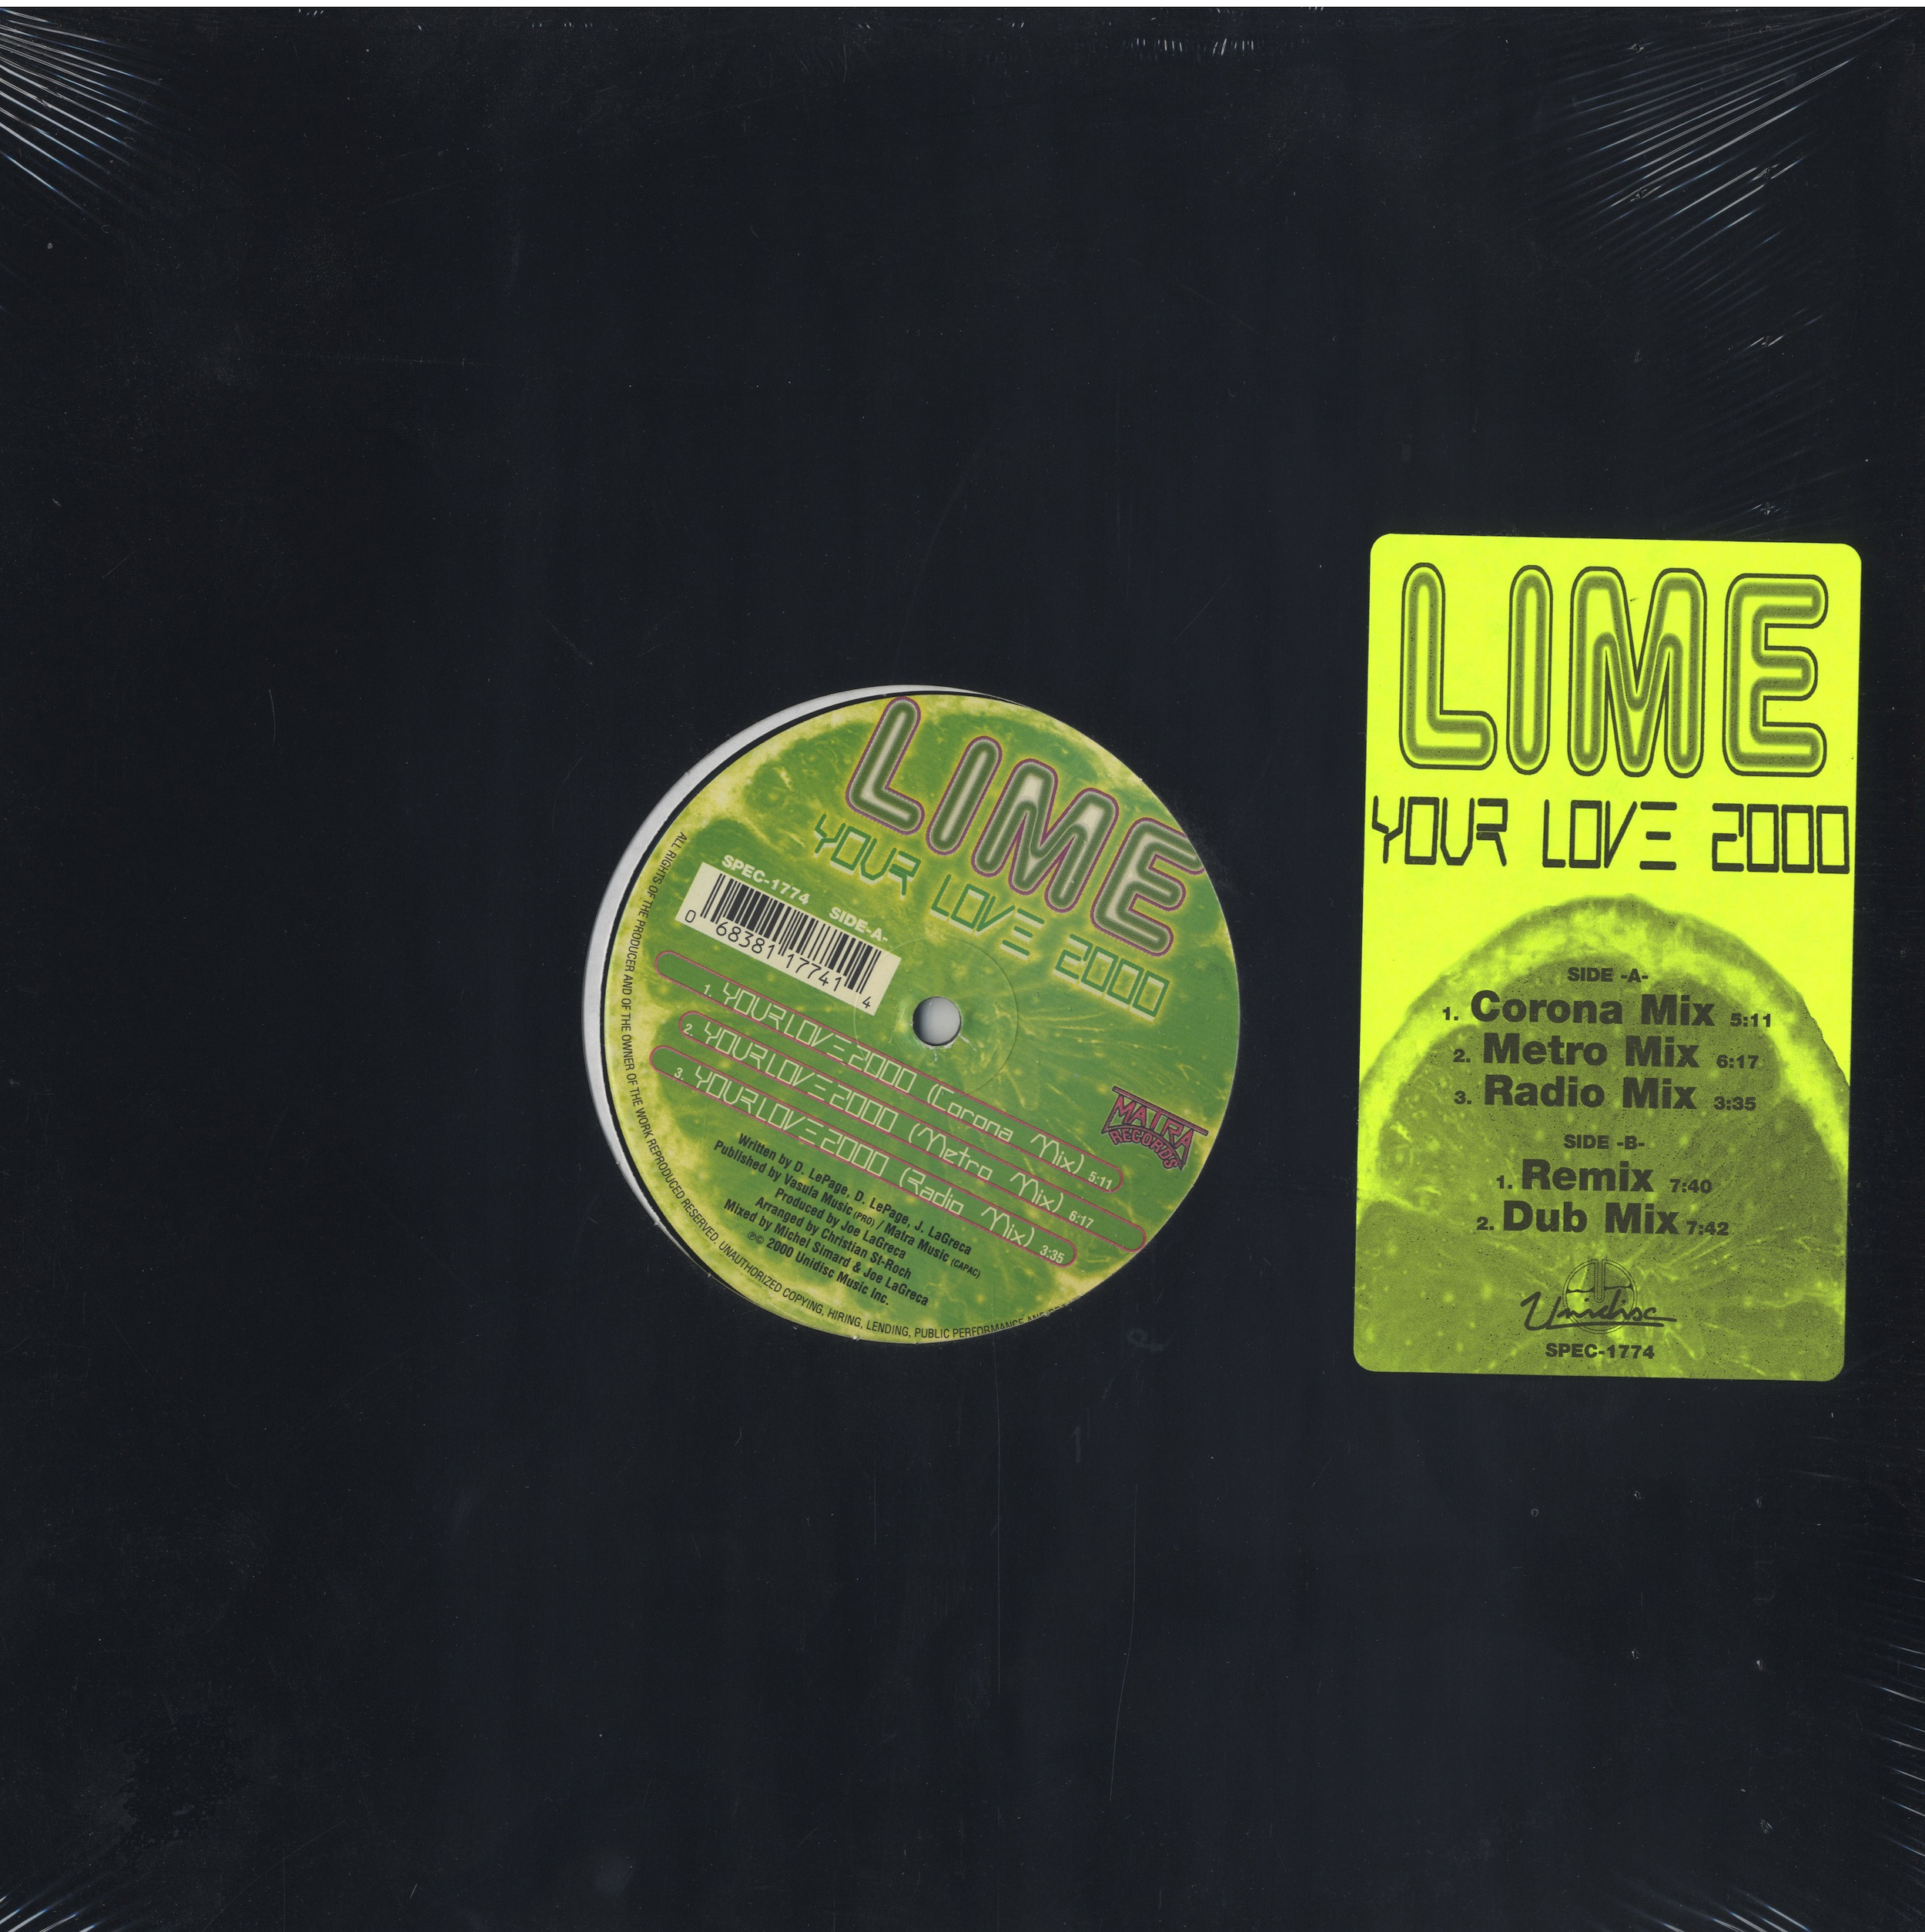 Lime - Your Love 2000 12